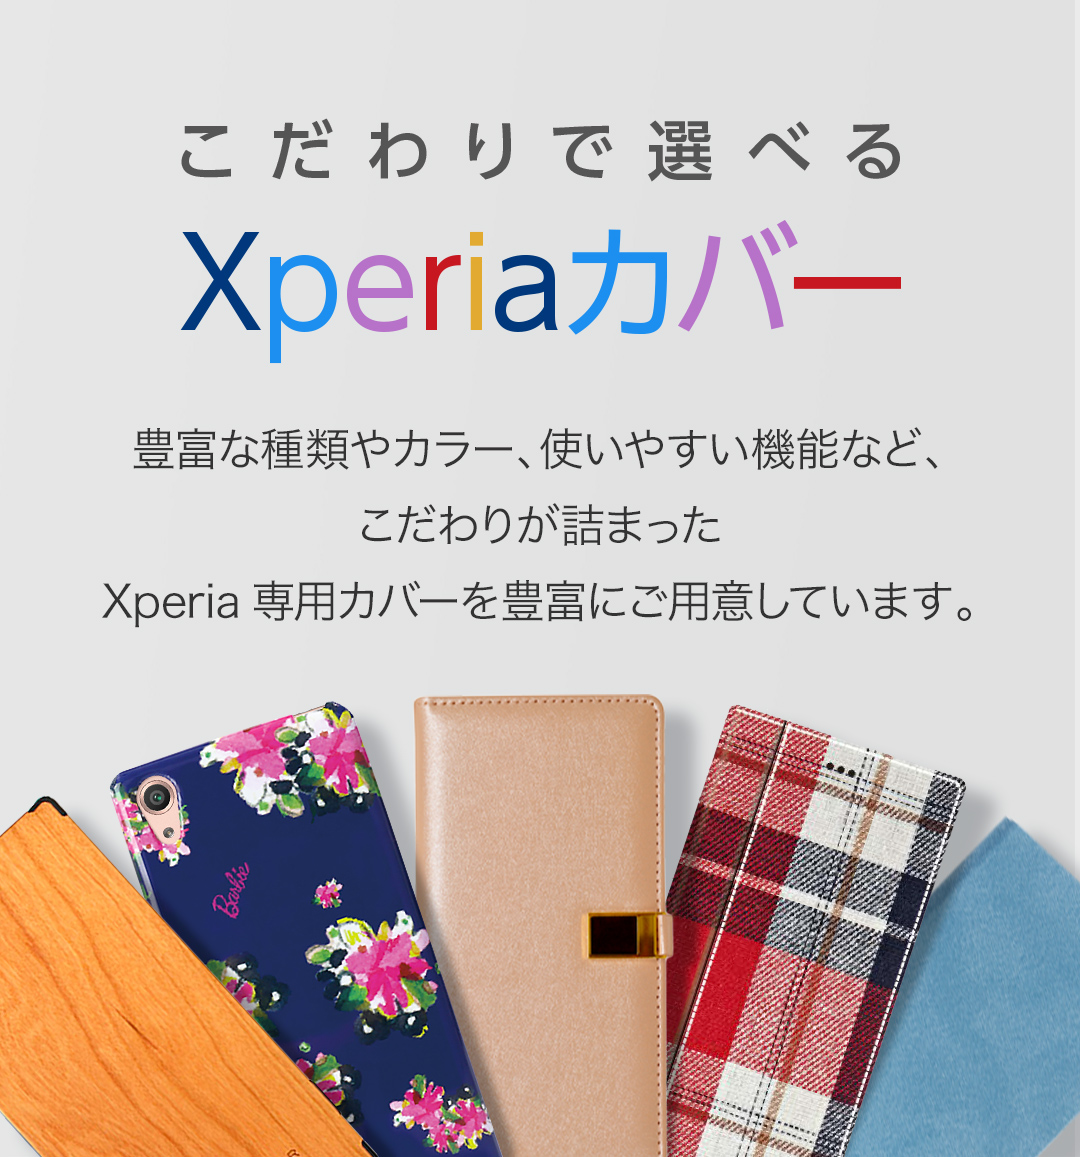 Xperia COLLABORATION COVER COLLECTION